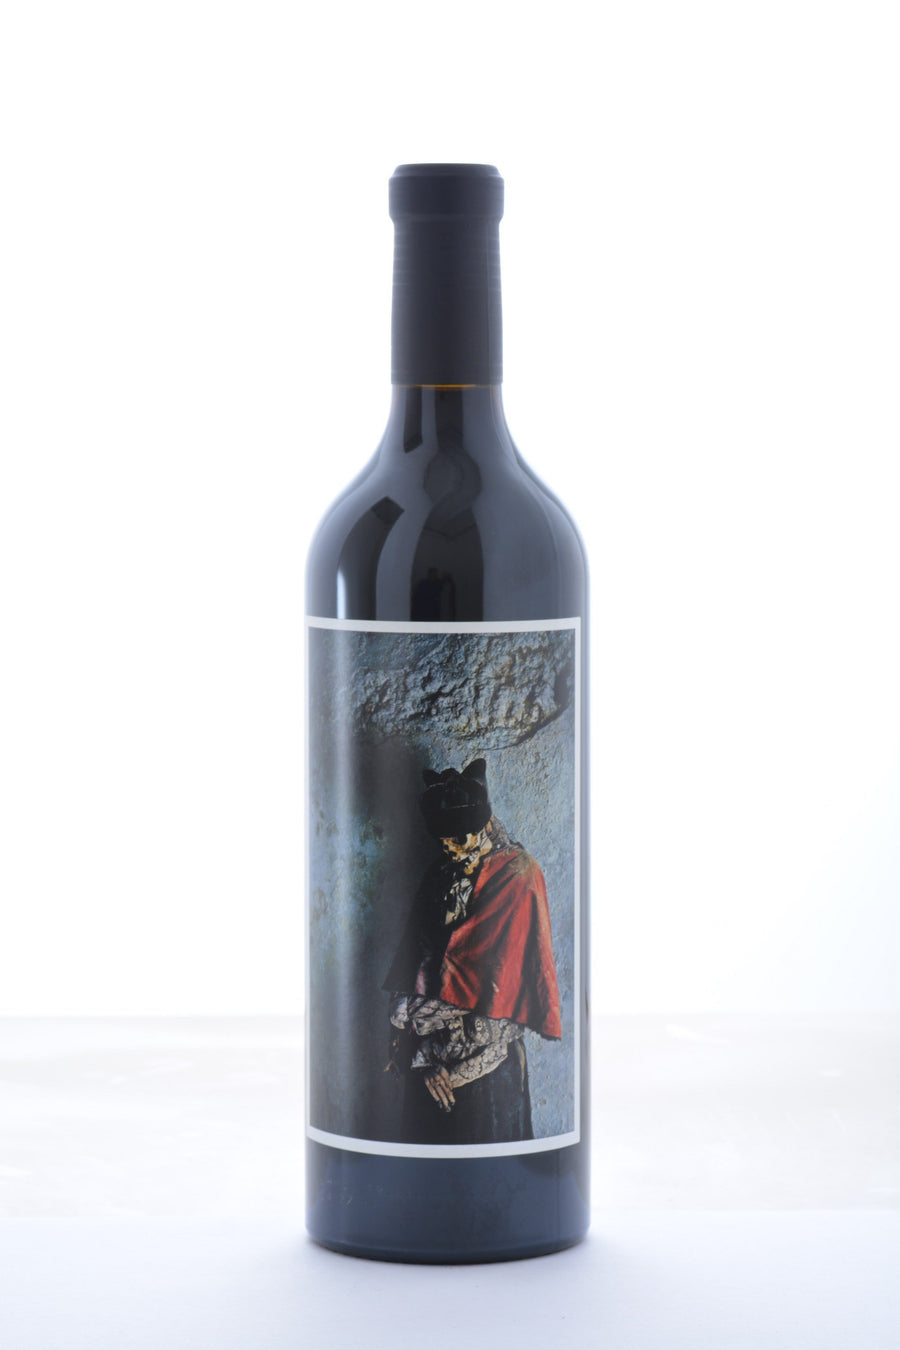 Orin Swift Cellars Palermo Cabernet Sauvignon 2016 - 750 ML - Wine on Sale